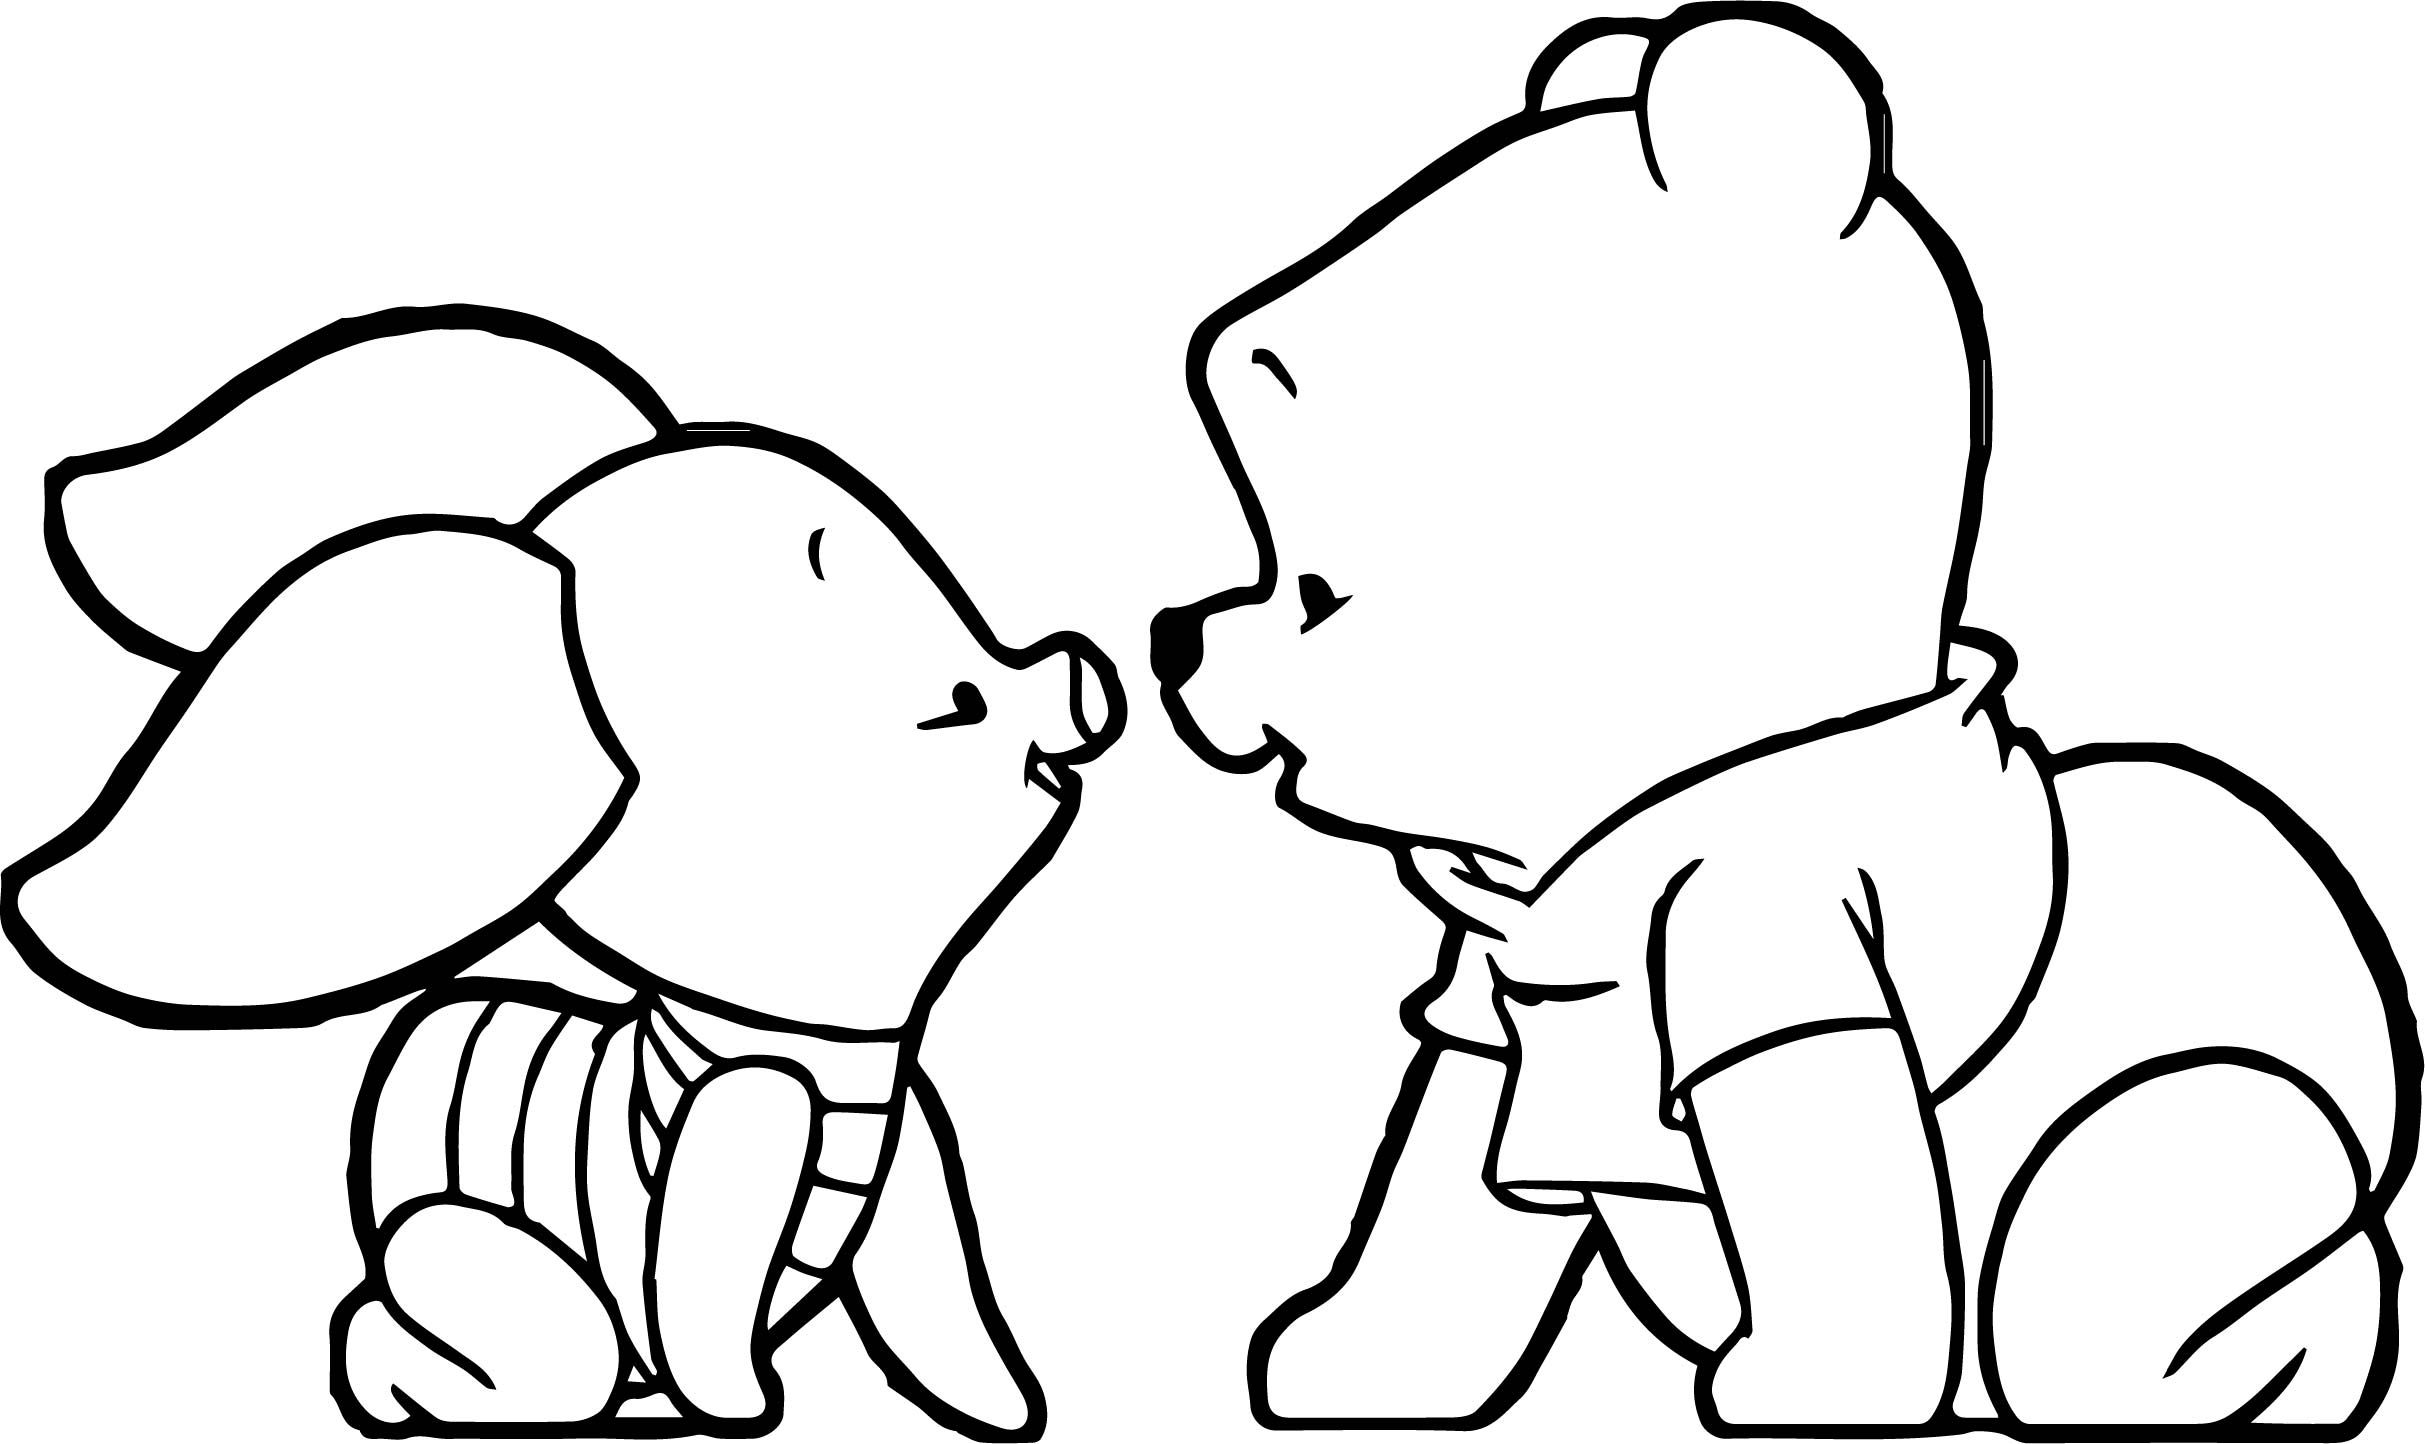 Baby Pooh Piglet Coloring Page Winnie The Pooh Drawing Cute Winnie The Pooh Whinnie The Pooh Drawings